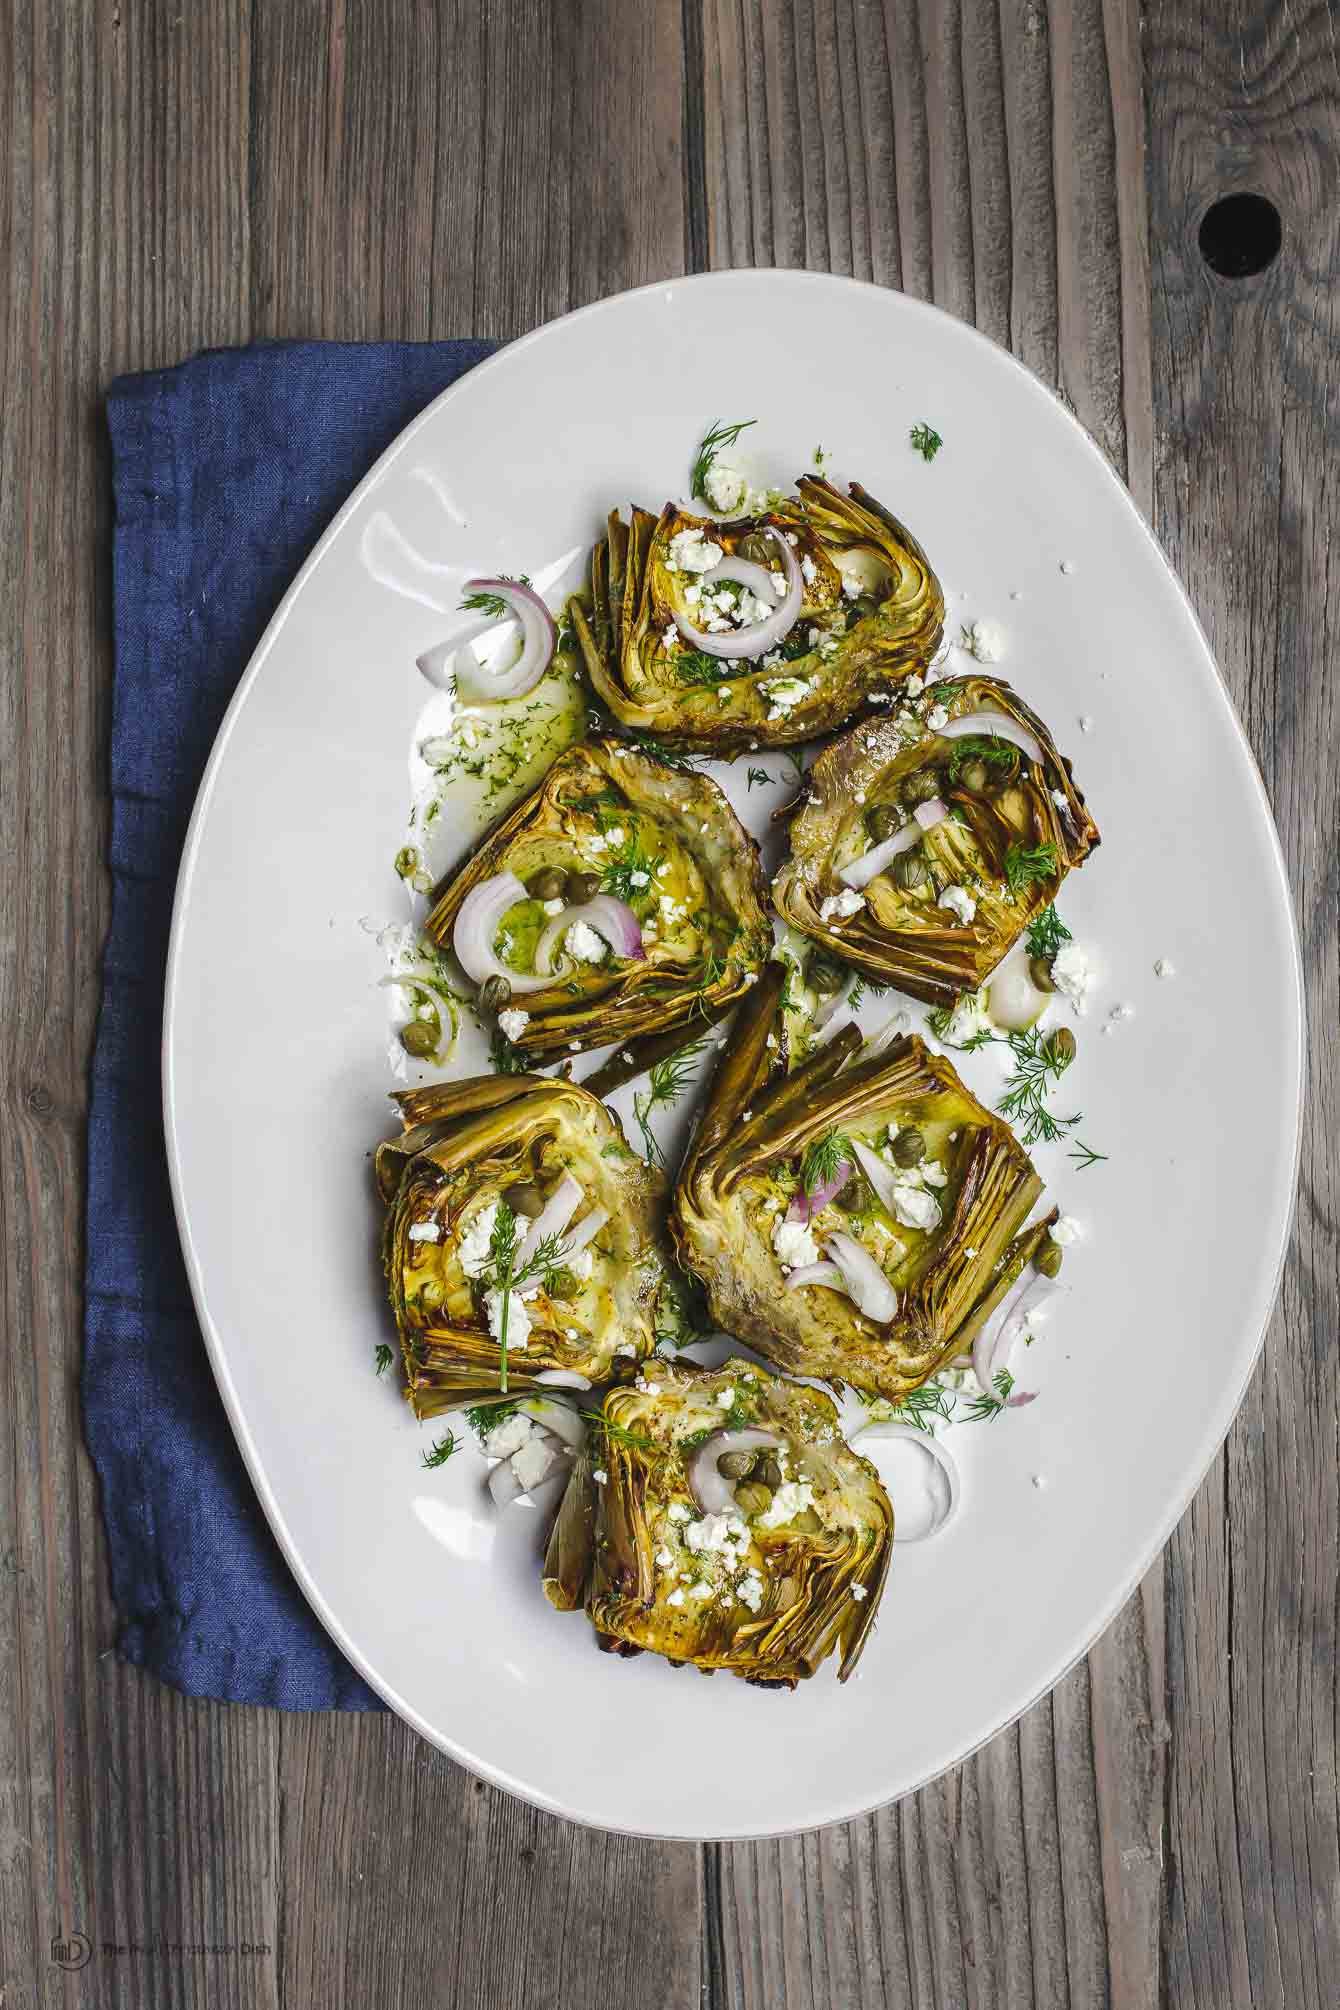 Plated artichokes garnished with feta cheese, capers and onions